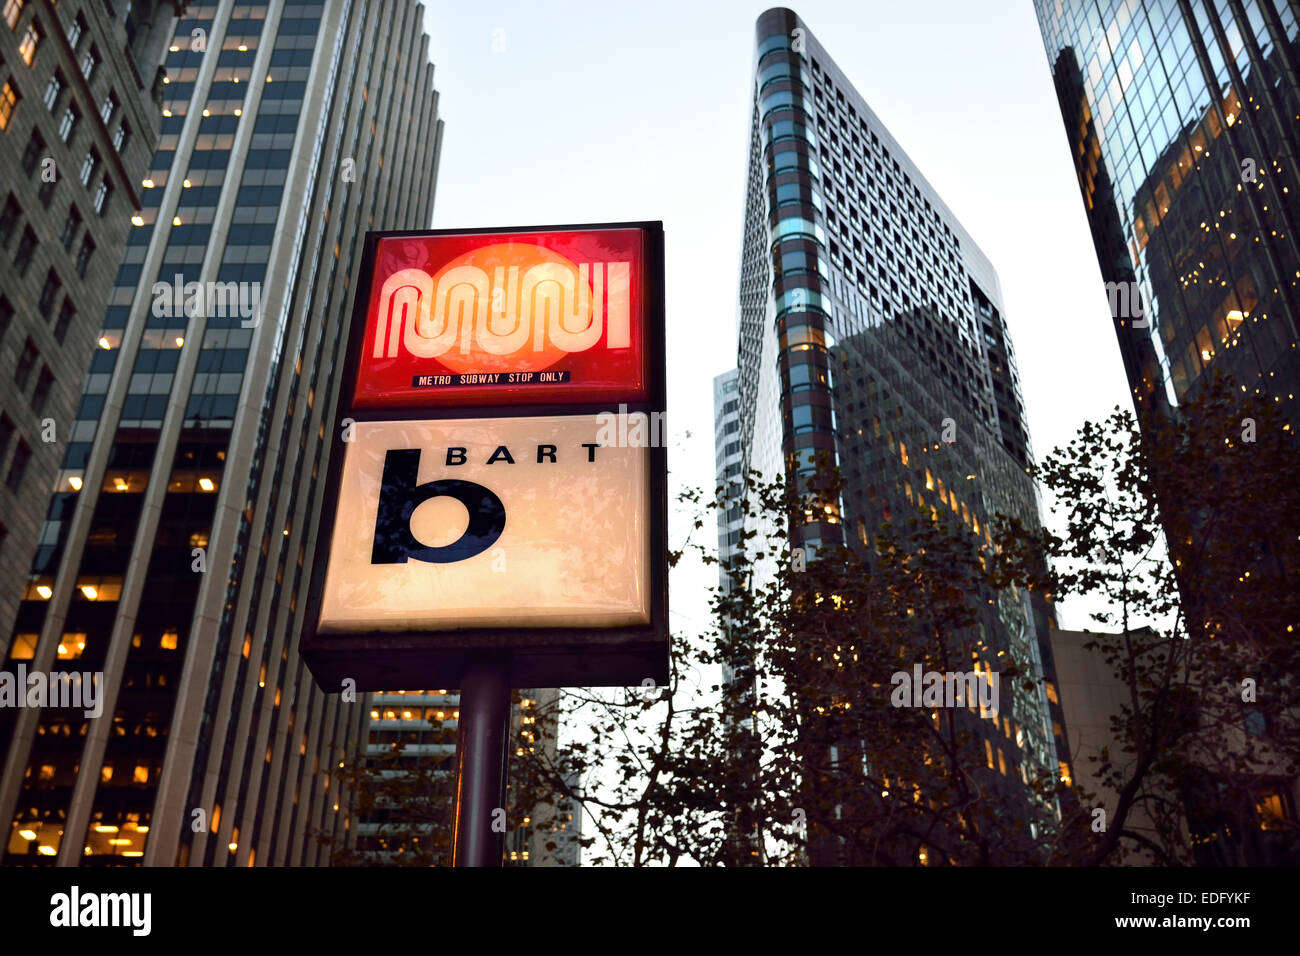 Lit sign at dusk for entrance to 'Bart' (Bay Area Rapid Transit ) on Market St. San Francisco California - Stock Image